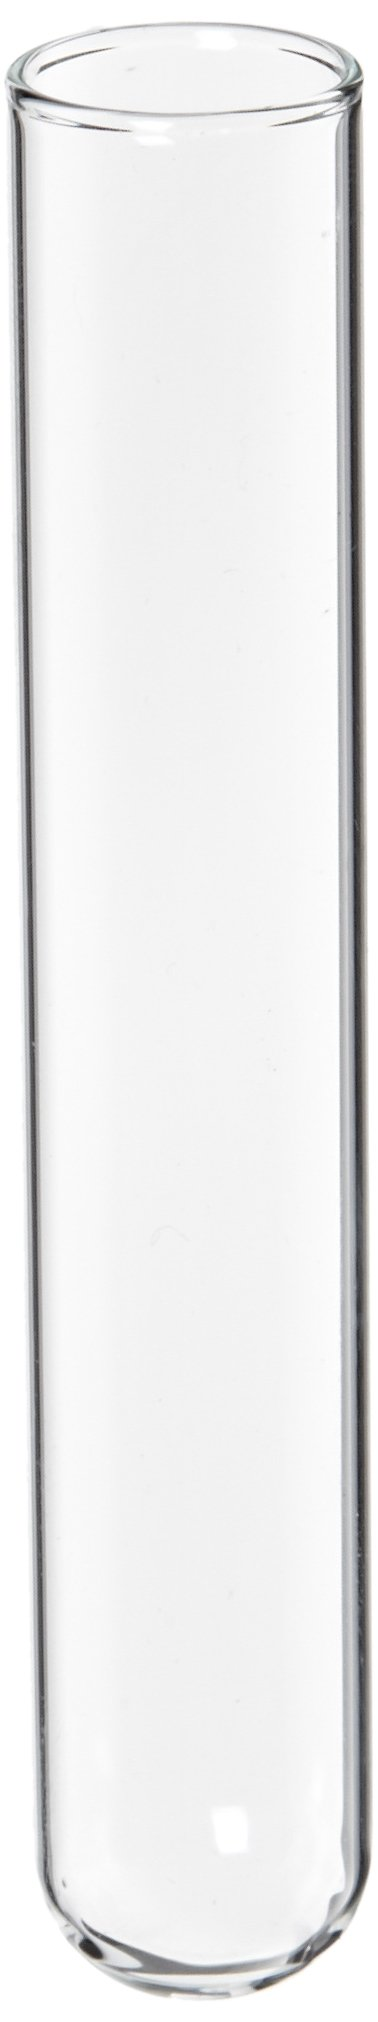 Kimble 73500-1585N-51A Borosilicate Glass Culture/Test Tube, with Rim Top (Case of 1000)